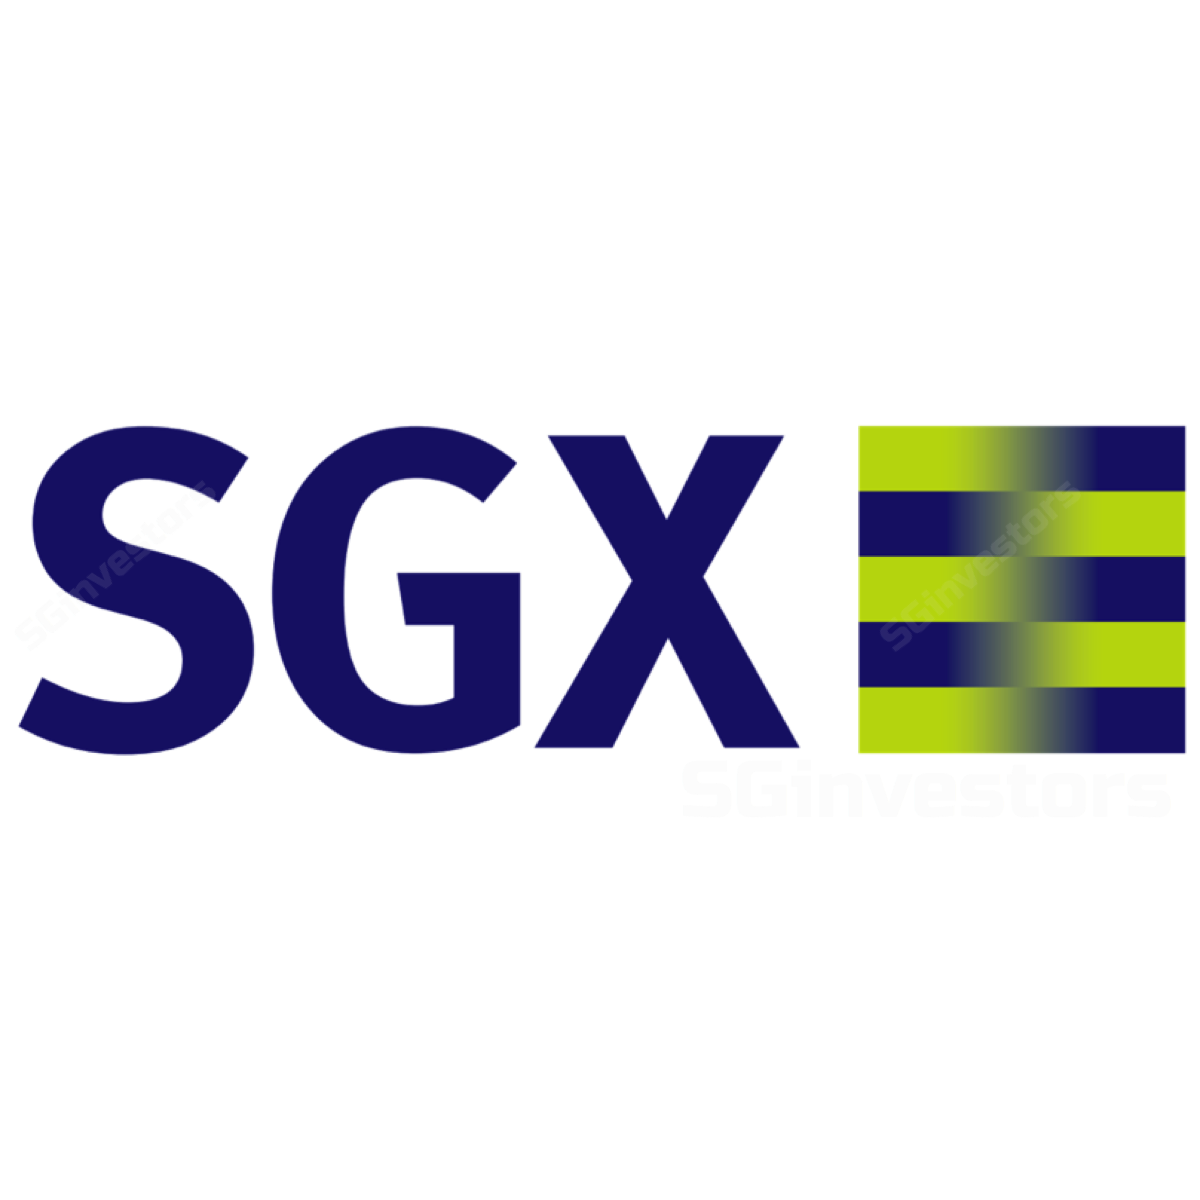 SGX - OCBC Investment 2018-04-23: Derivatives Powered Strong 3Q